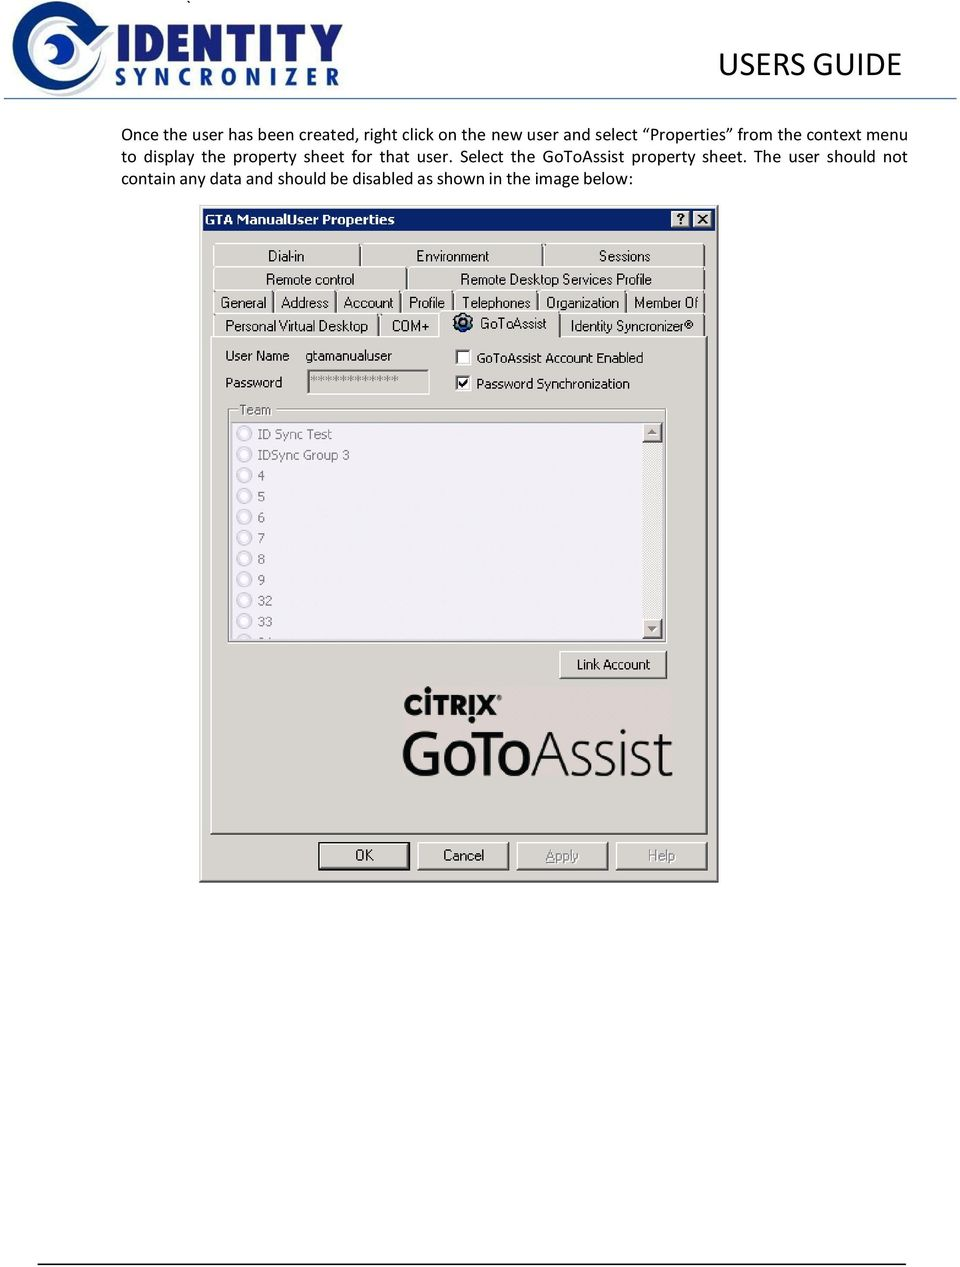 sheet for that user. Select the GoToAssist property sheet.